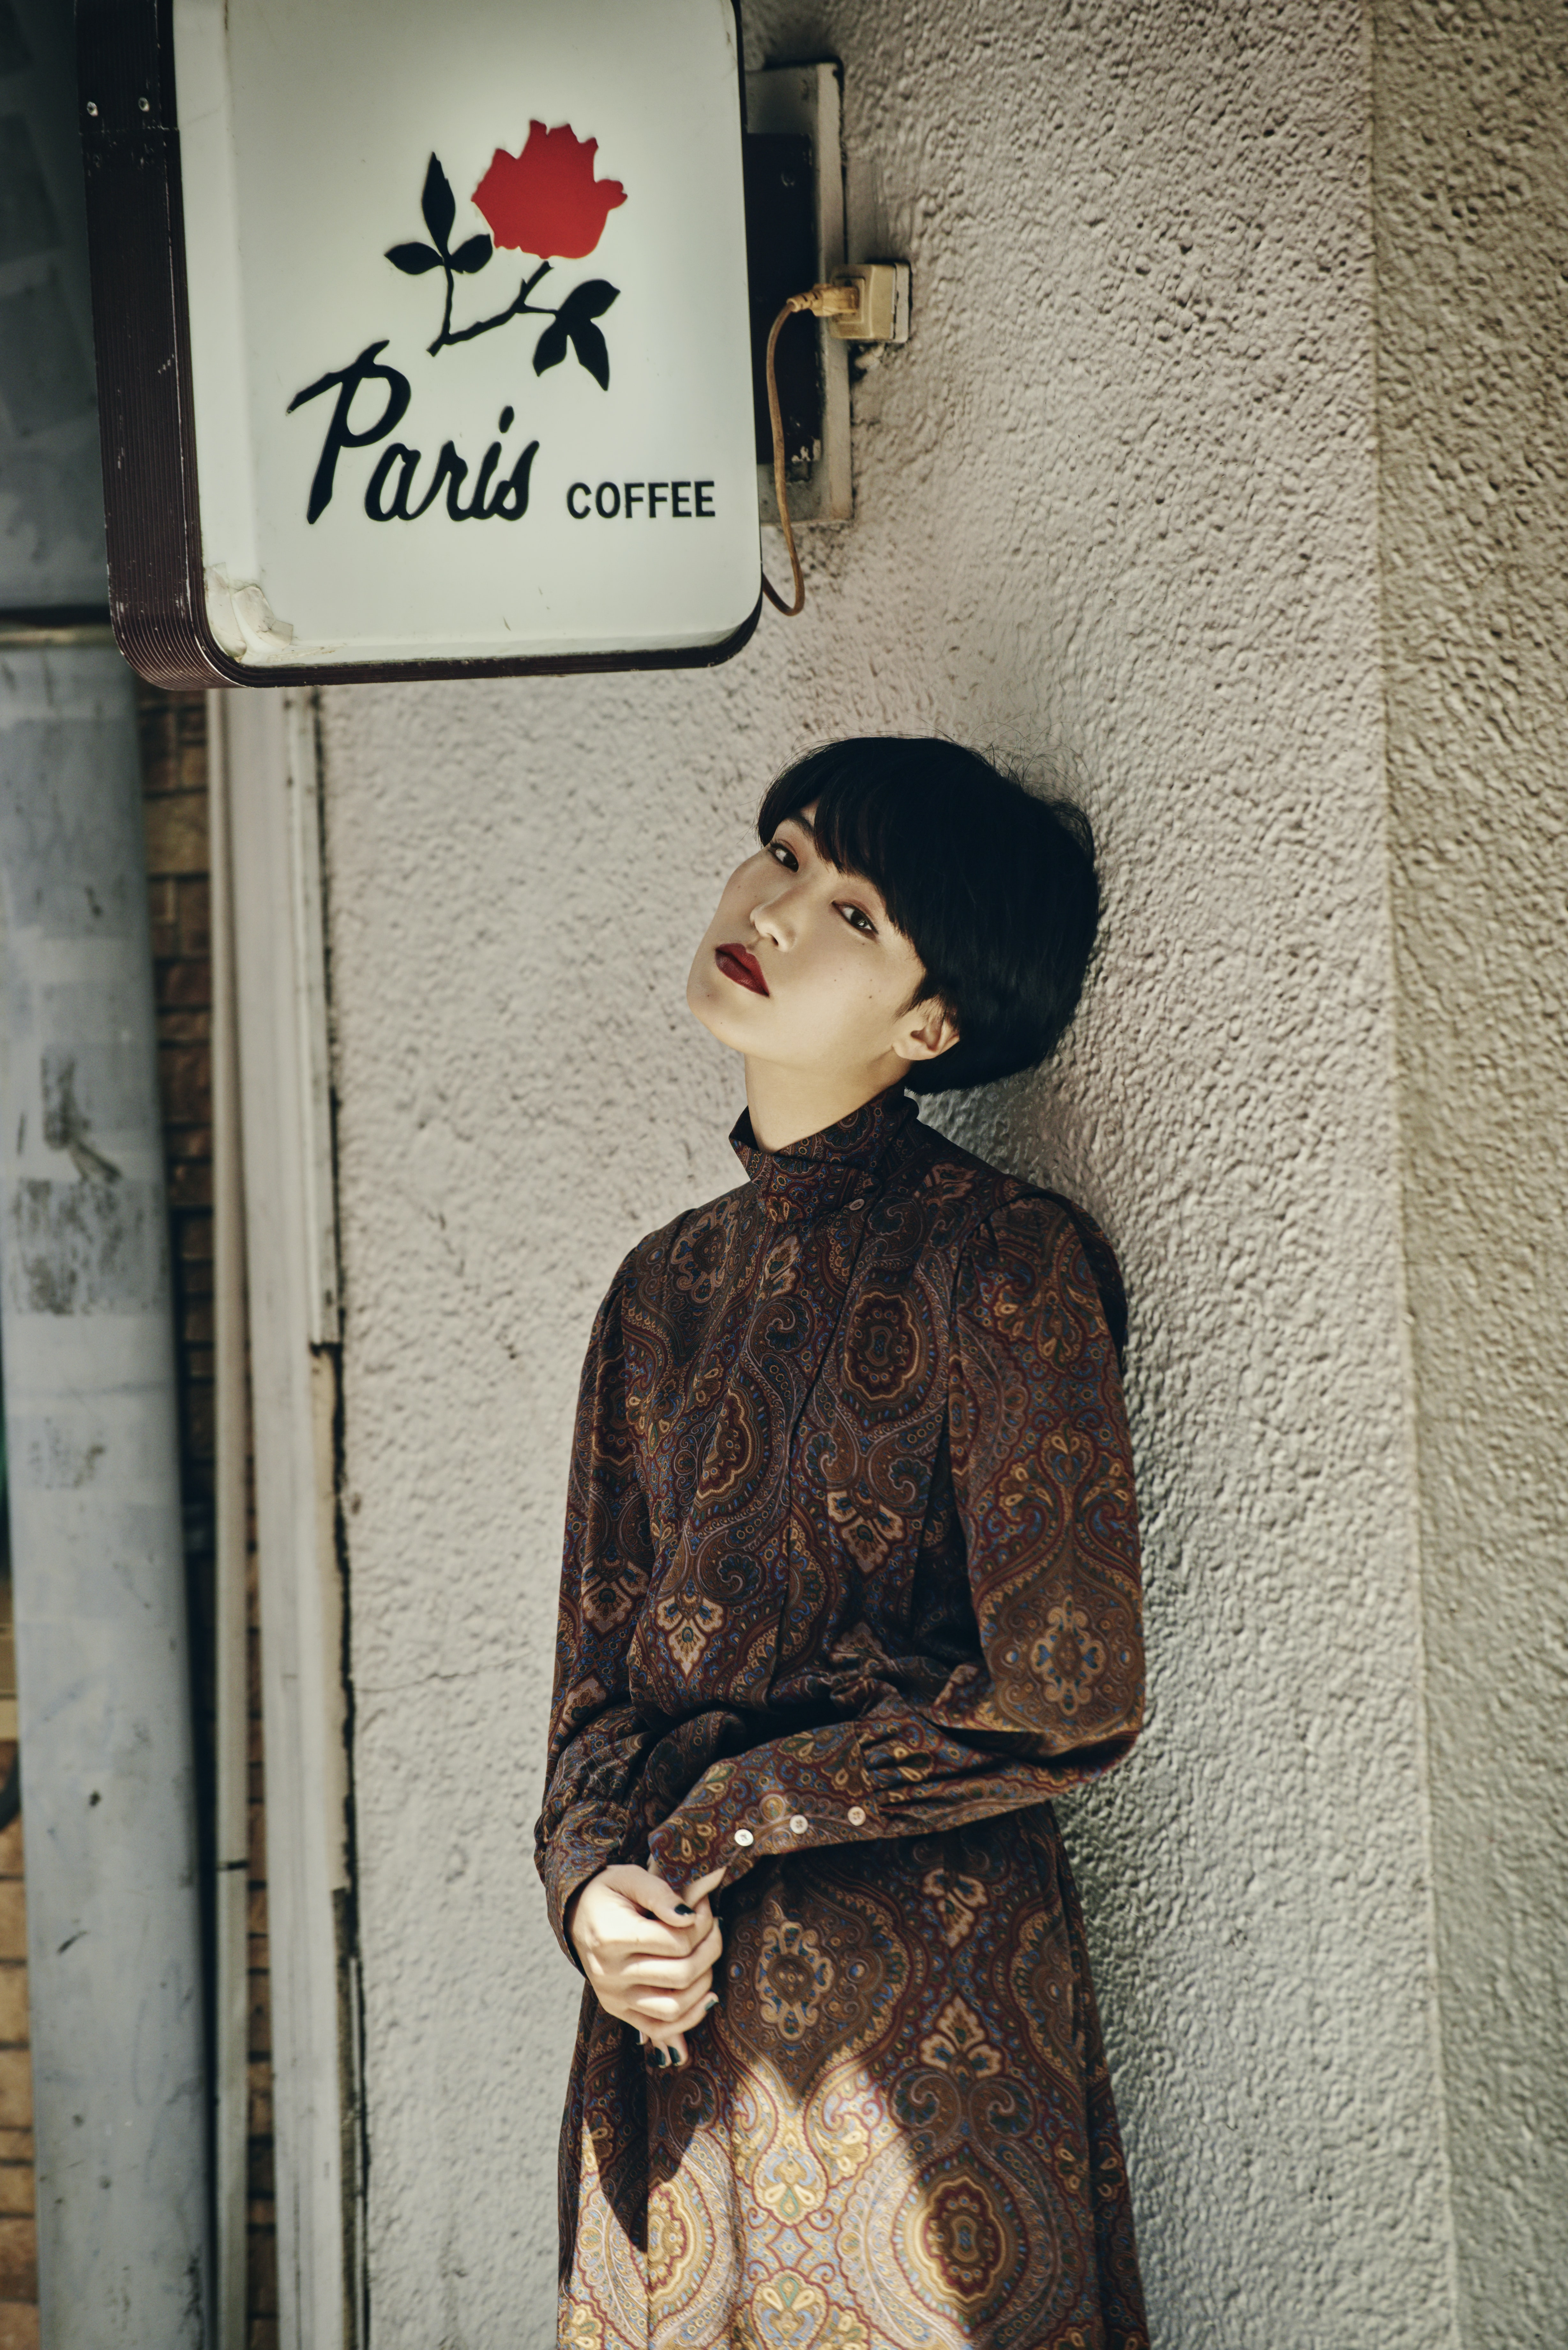 Trendy woman with an edgy haircut leaning against a wall